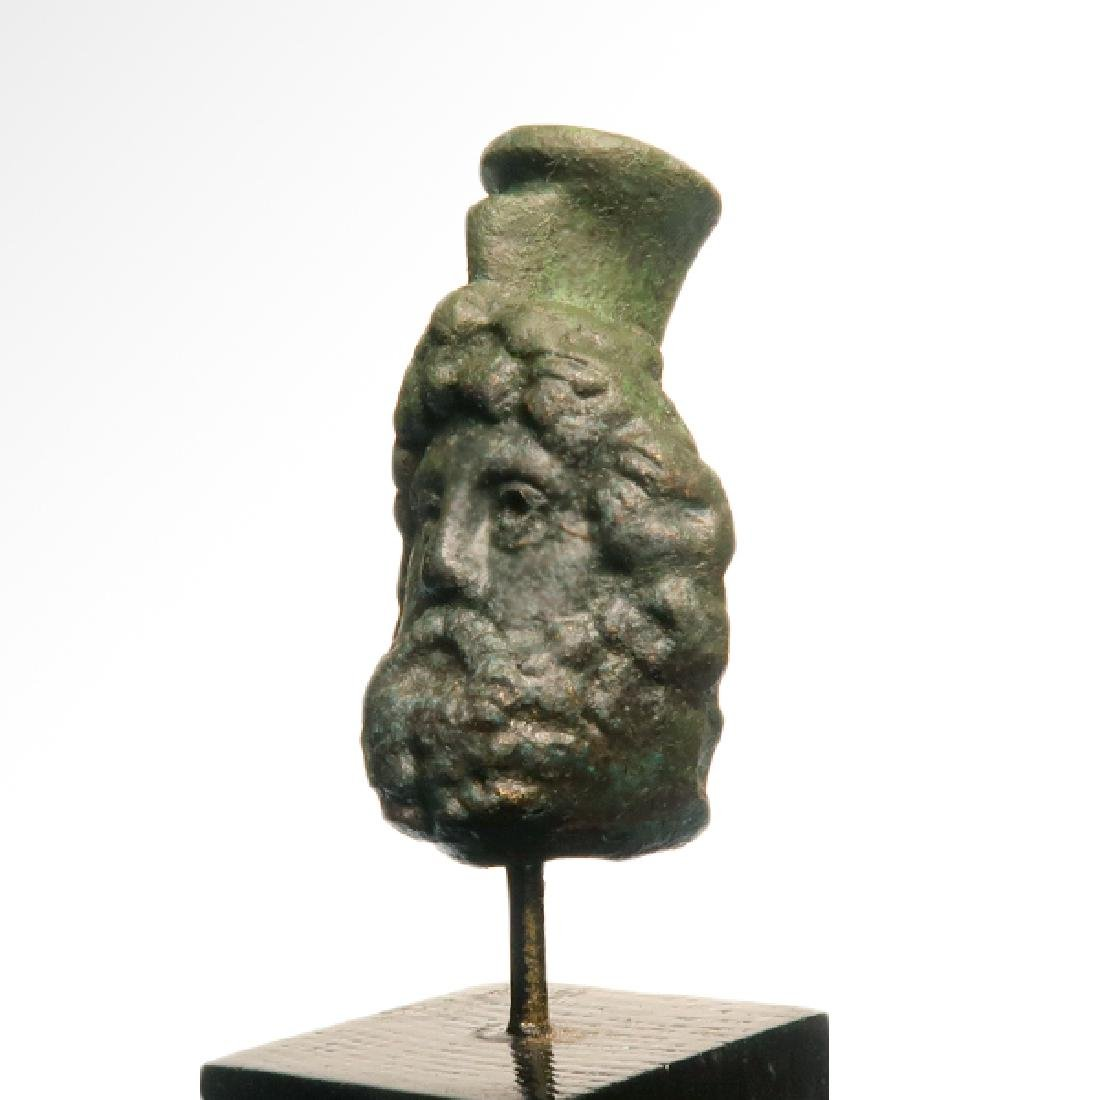 Roman Bronze Head of Zeus-Serapis, c. 1st Century A.D. - 4